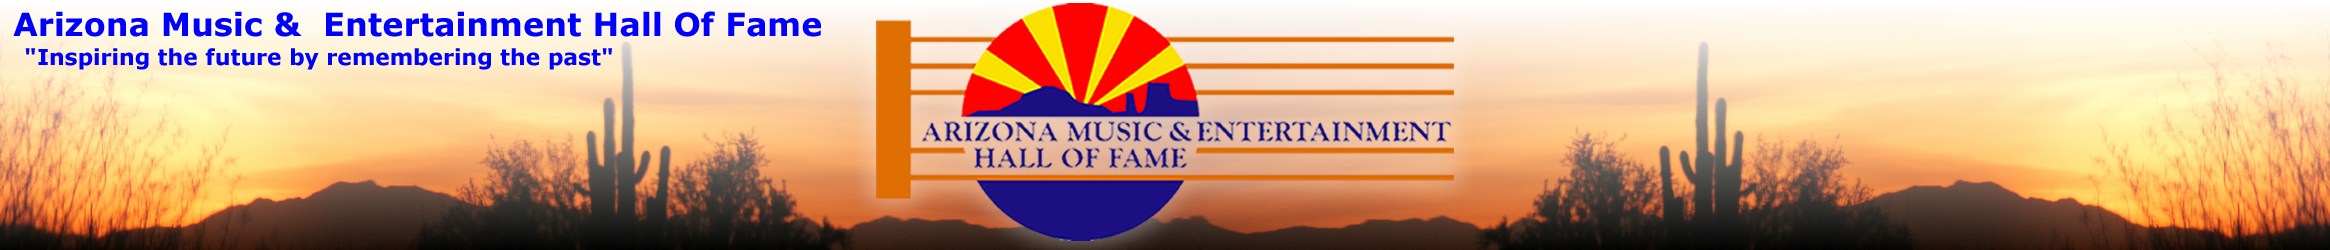 Arizona Music & Entertainment Hall Of Fame